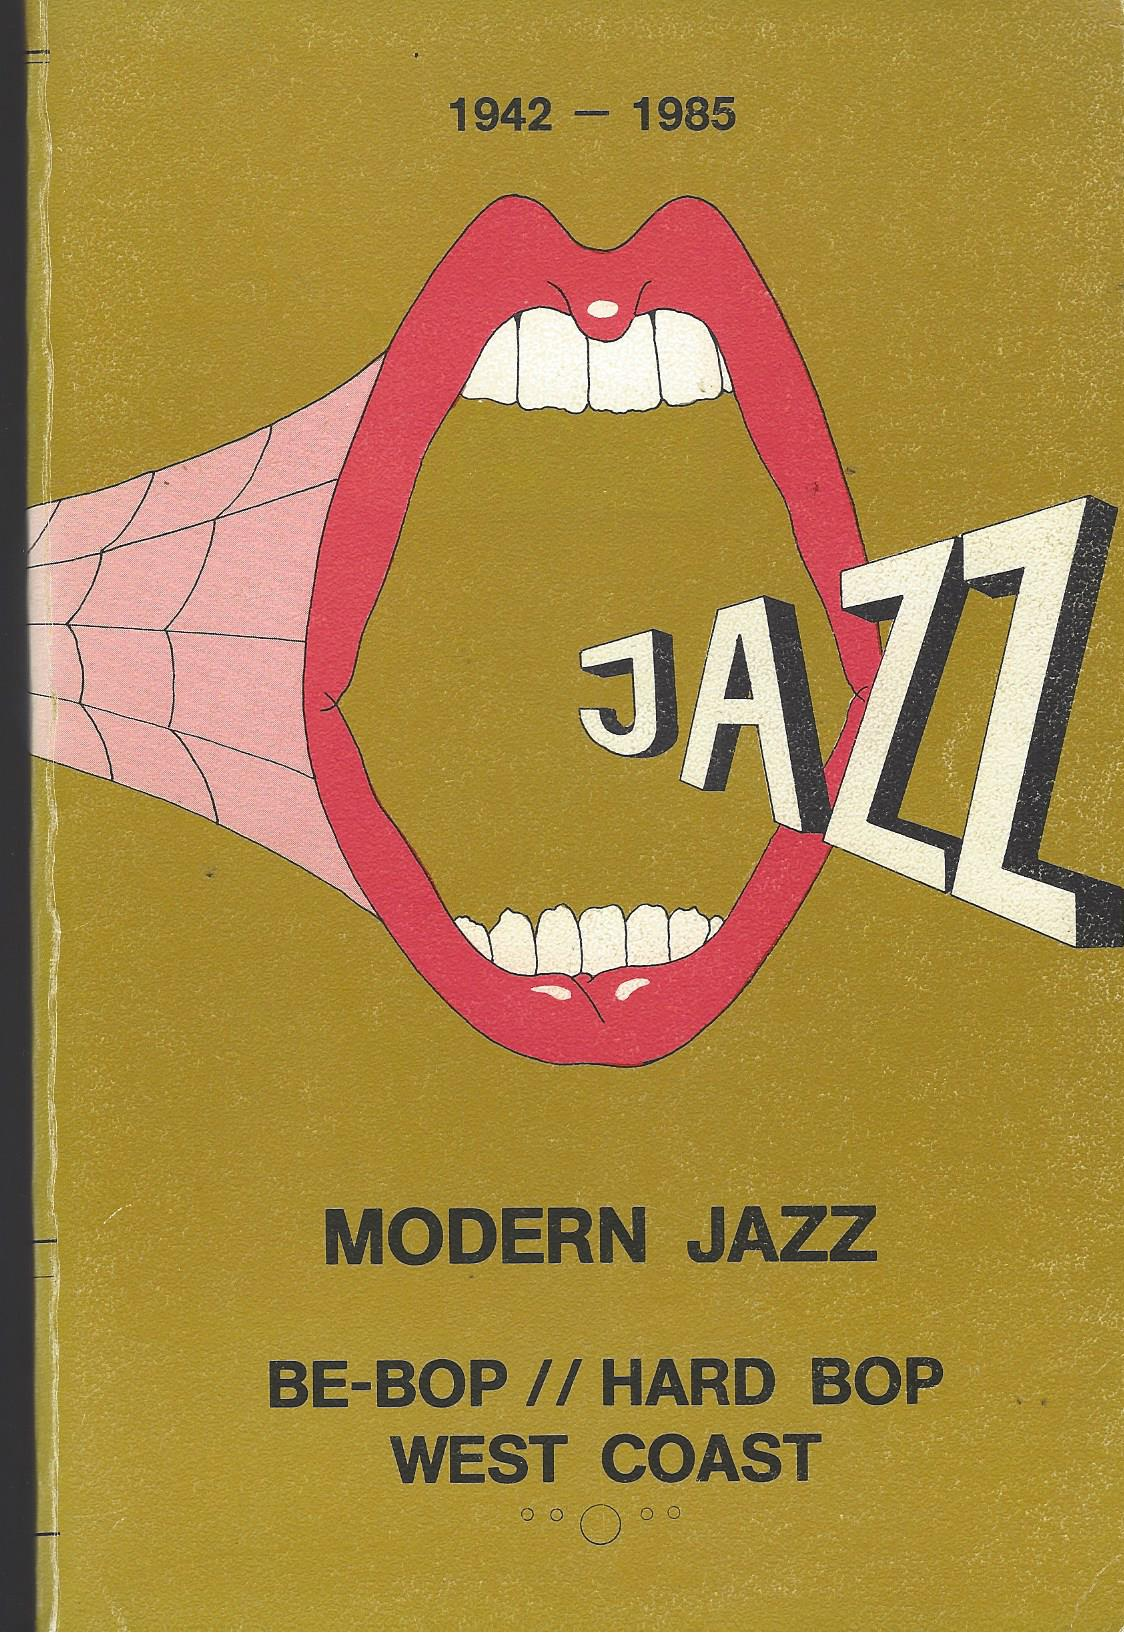 Image for Modern Discography: Modern Jazz/ Be-Bop/Hard Bop/ West Coast 1942-1985 - Vol 5 P-S